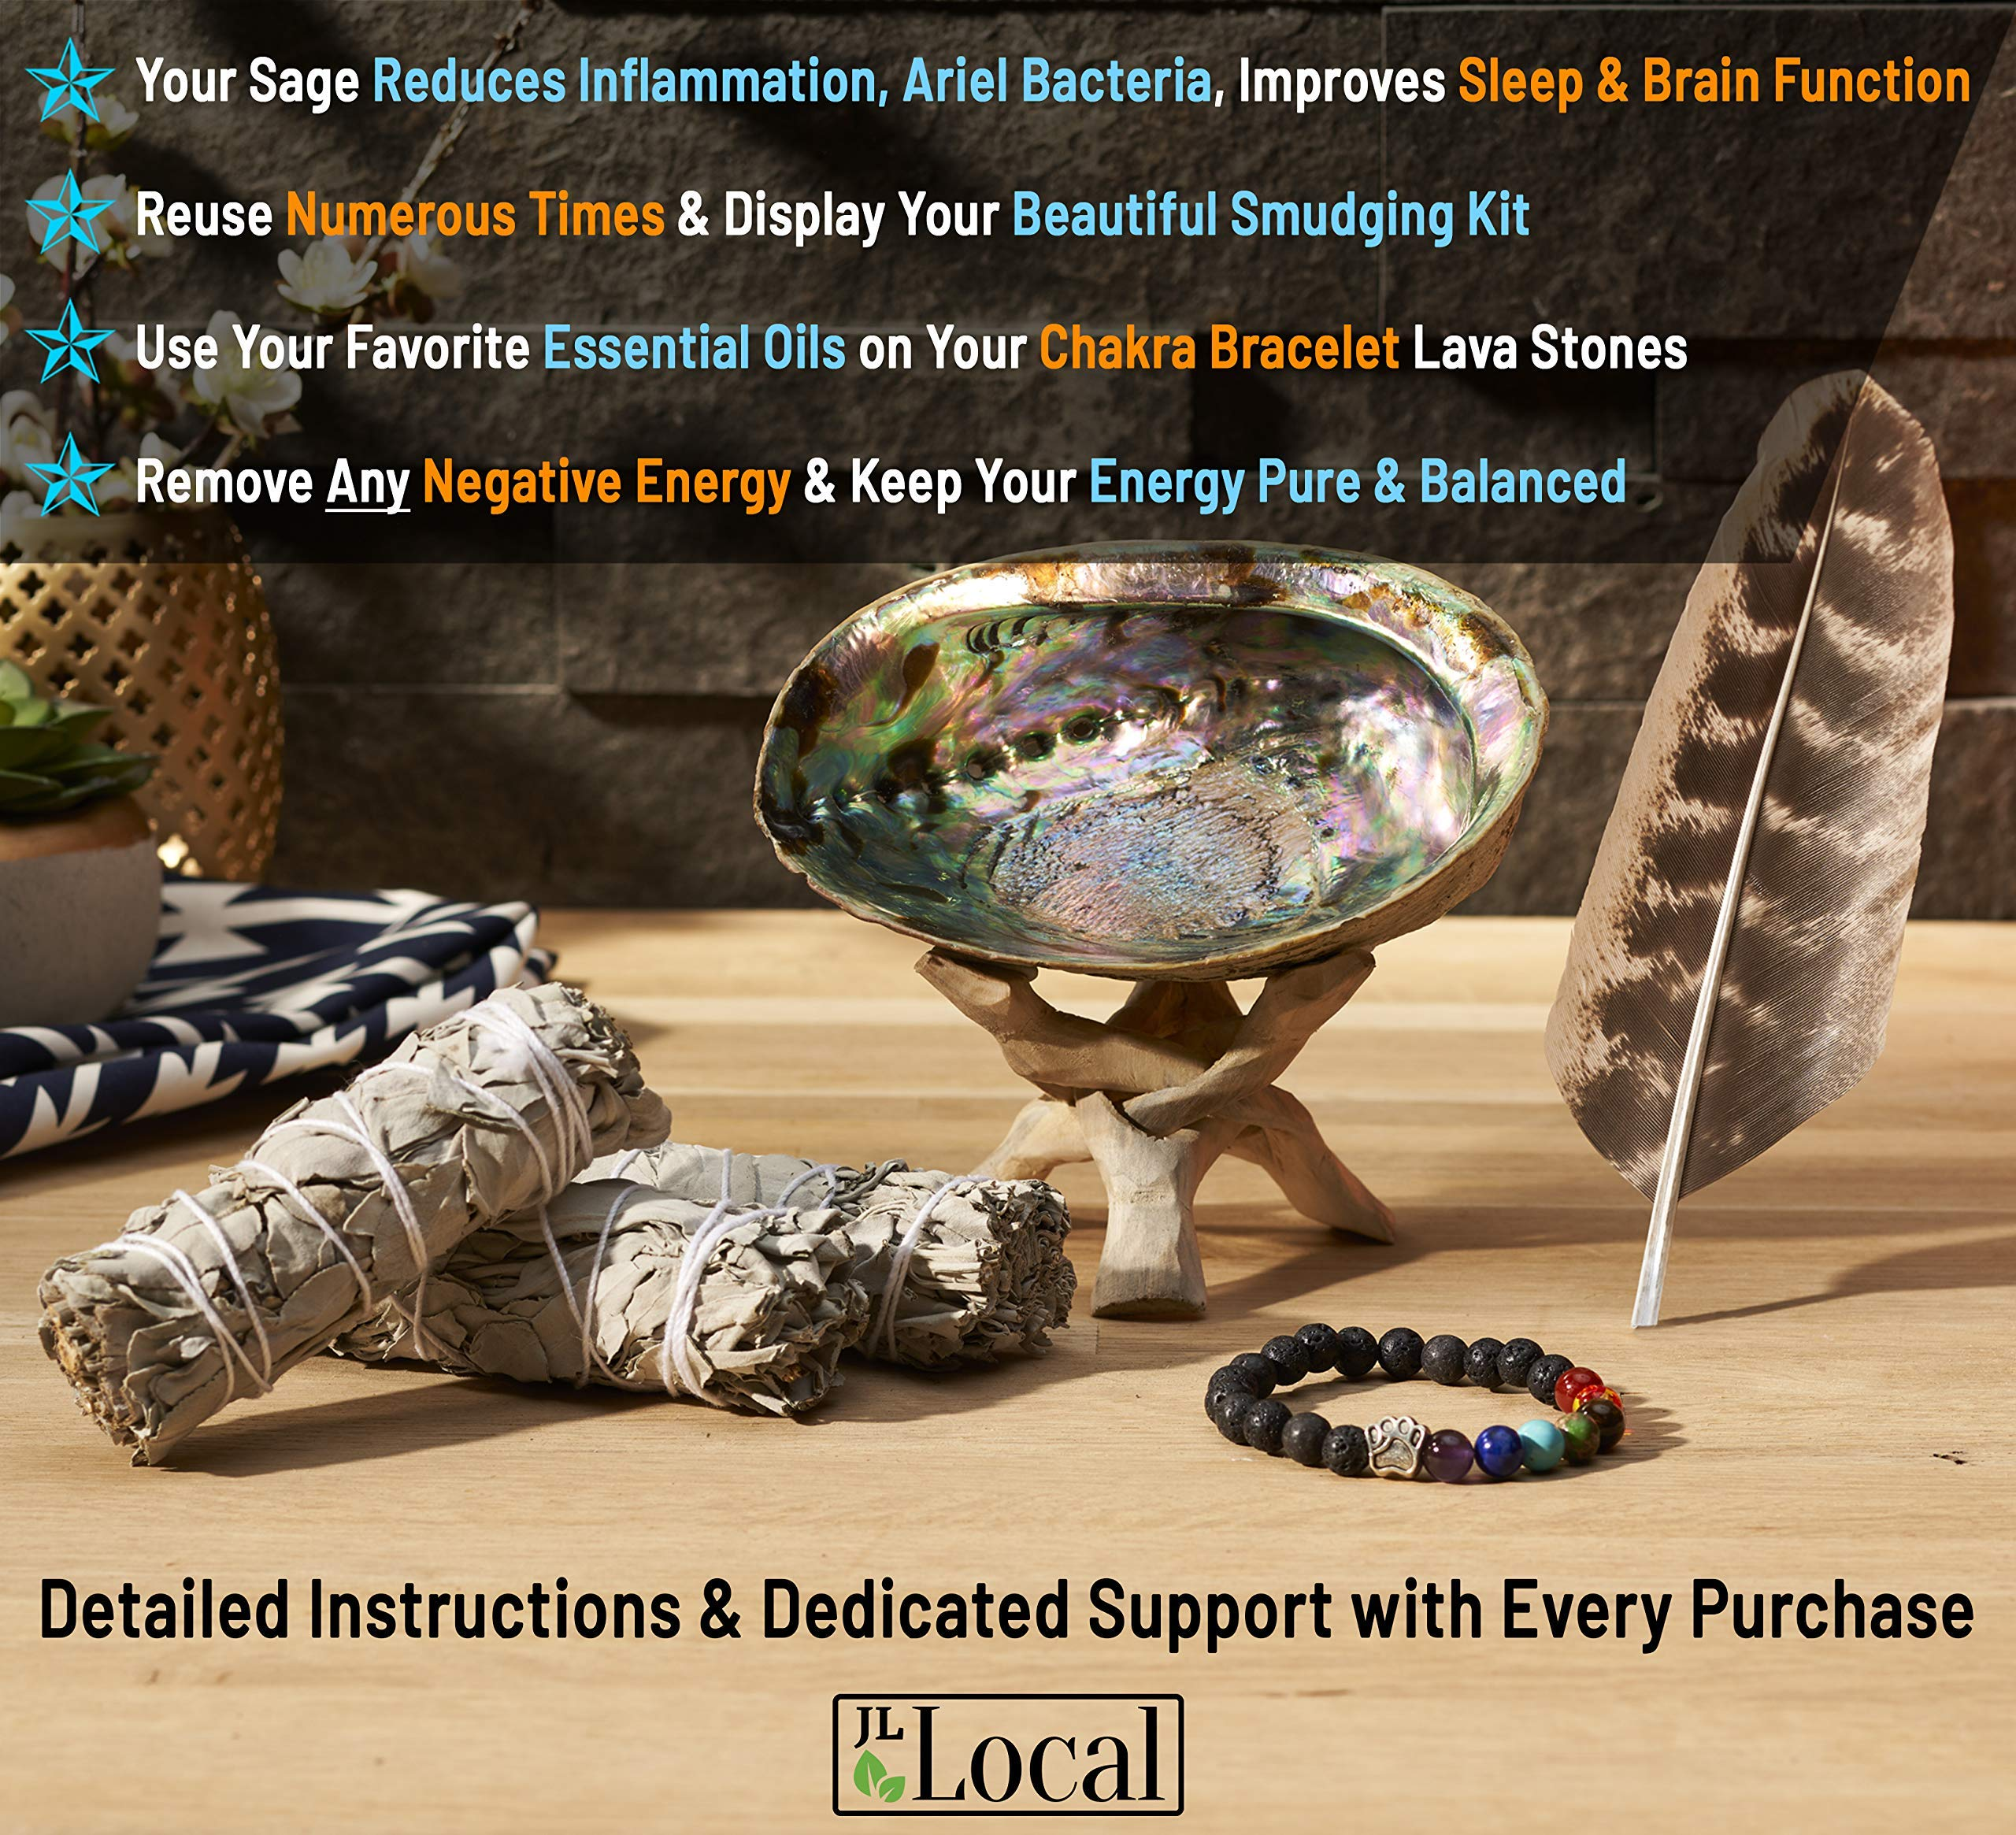 JL Local 3 White Sage Smudge Gift Kit - Abalone Shell, Feather, Stand, Instructions & More - Smudging, Cleansing, Healing & Stress Relief by JL Local (Image #4)